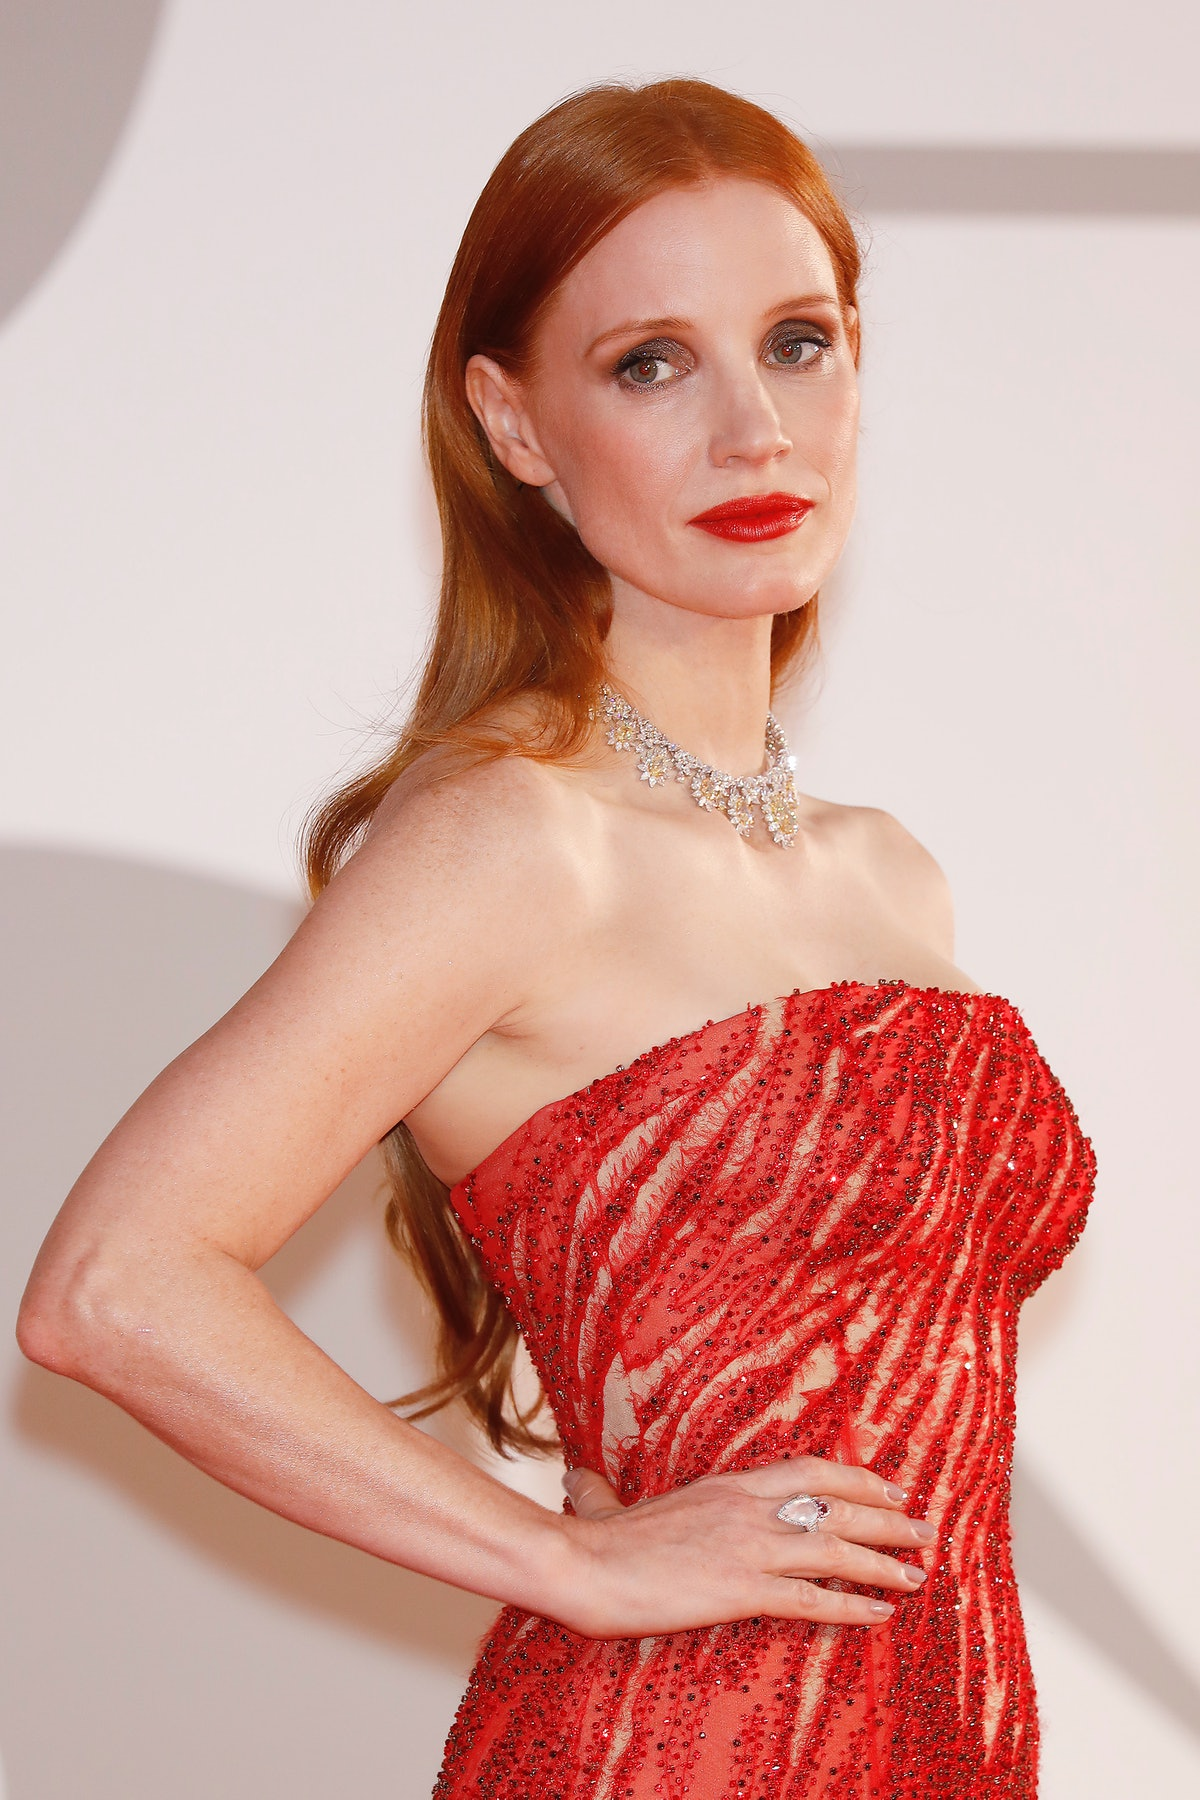 VENICE, ITALY - SEPTEMBER 04, 2021: Jessica Chastain arrives on the red carpet for 'Scenes From A Ma...